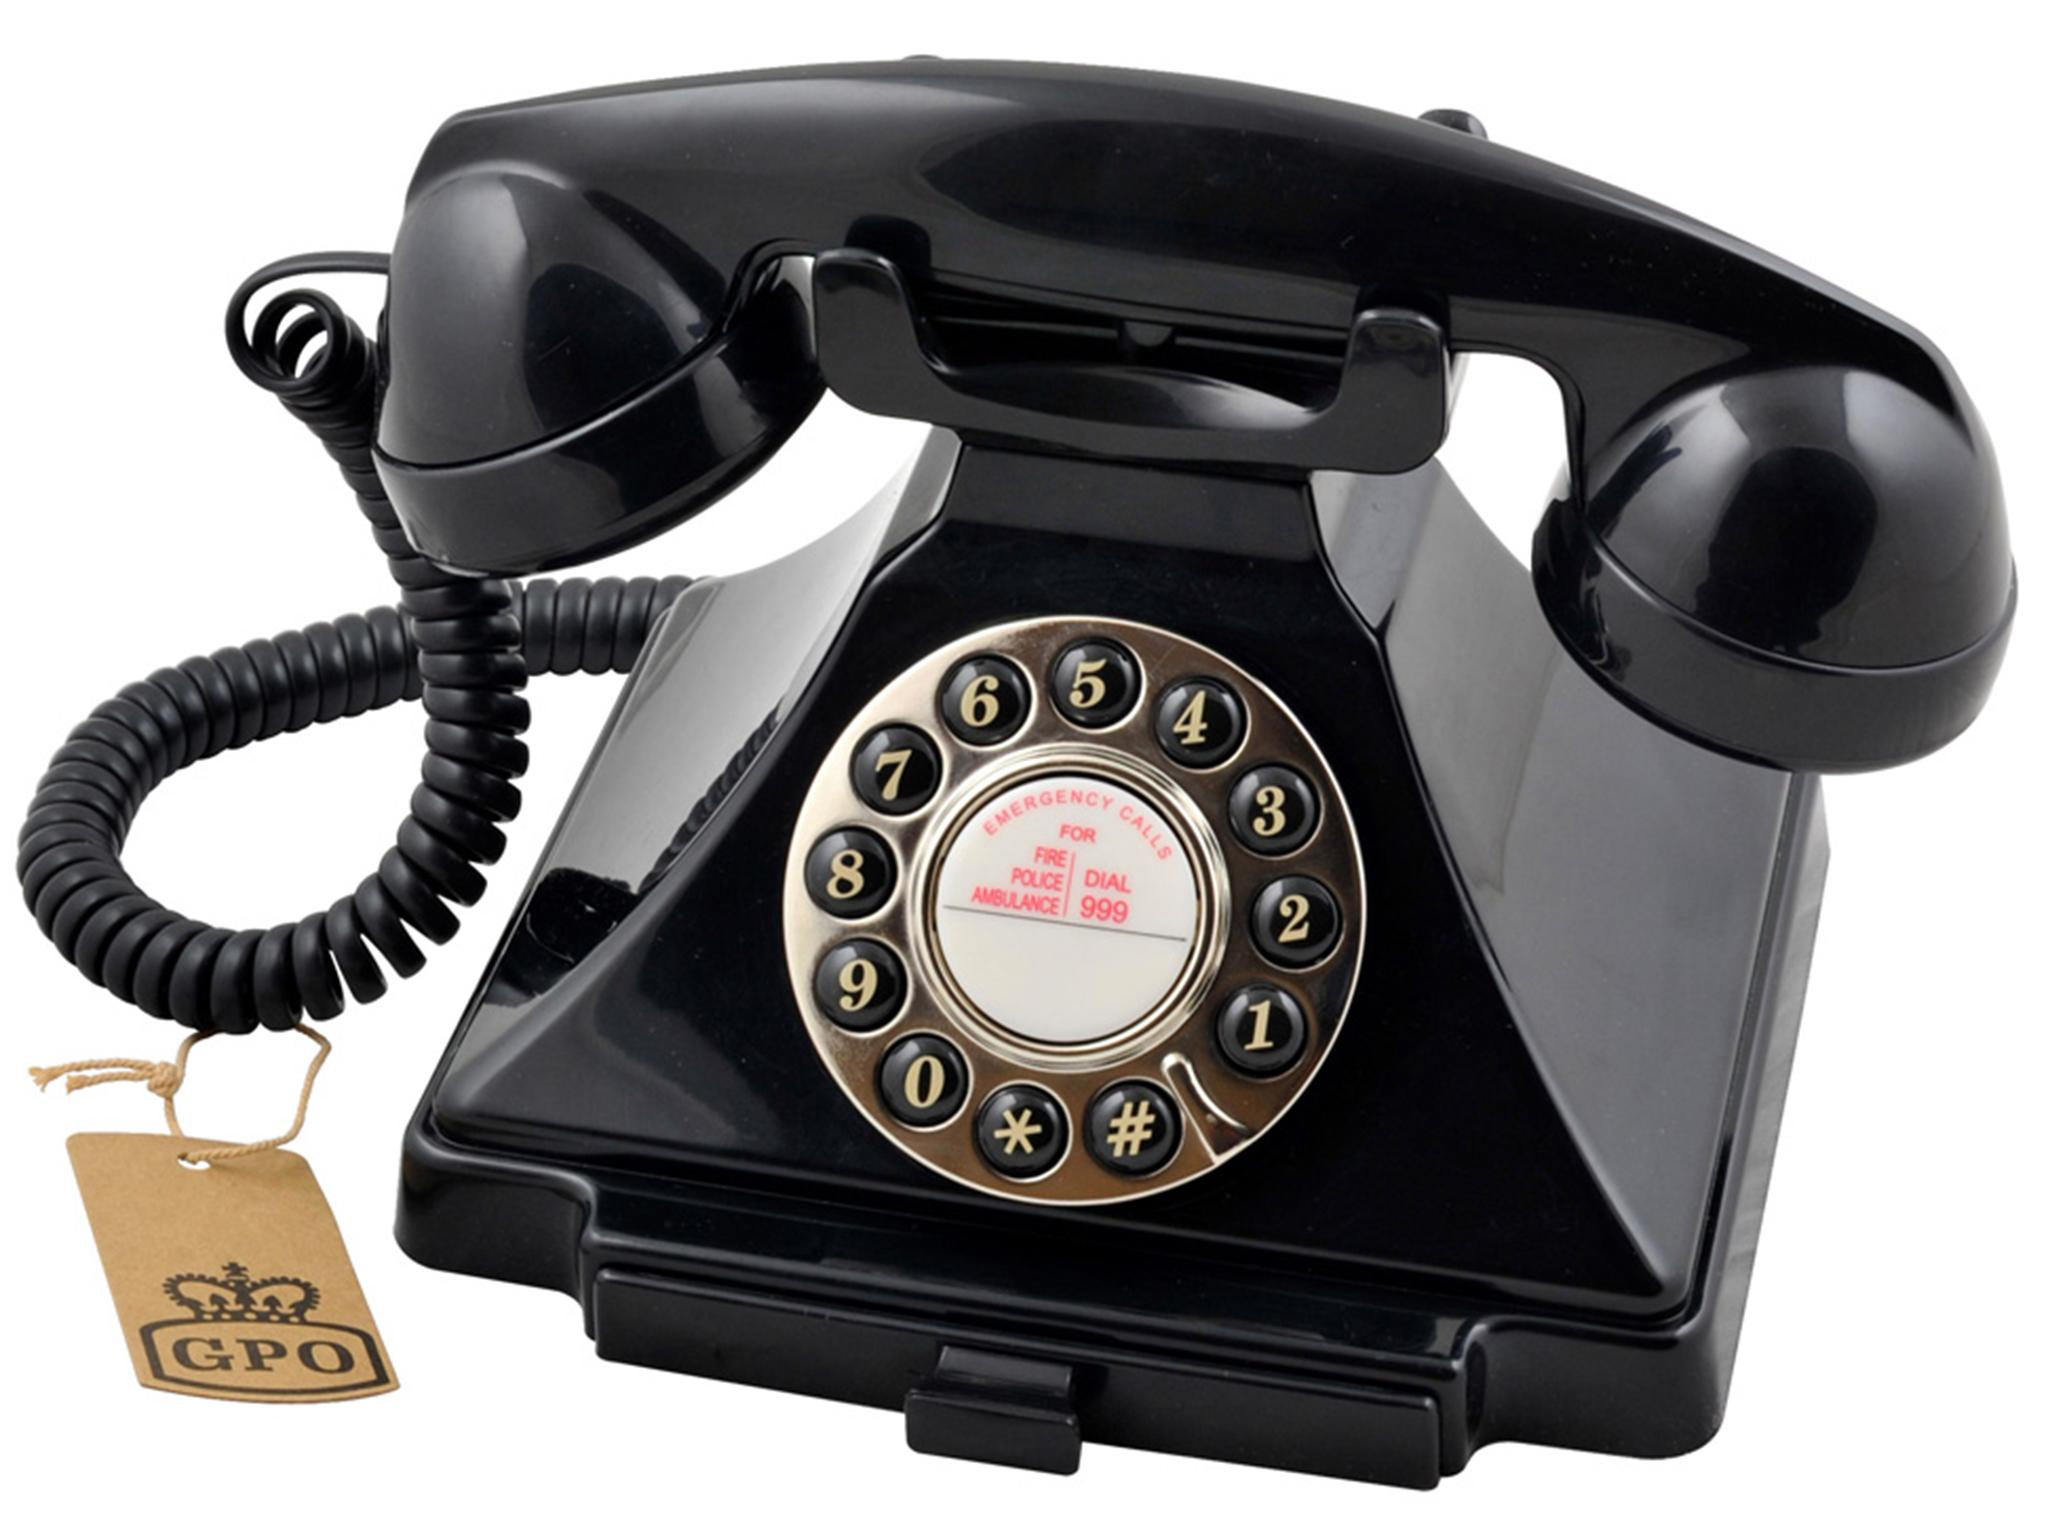 Telephones used in sex play